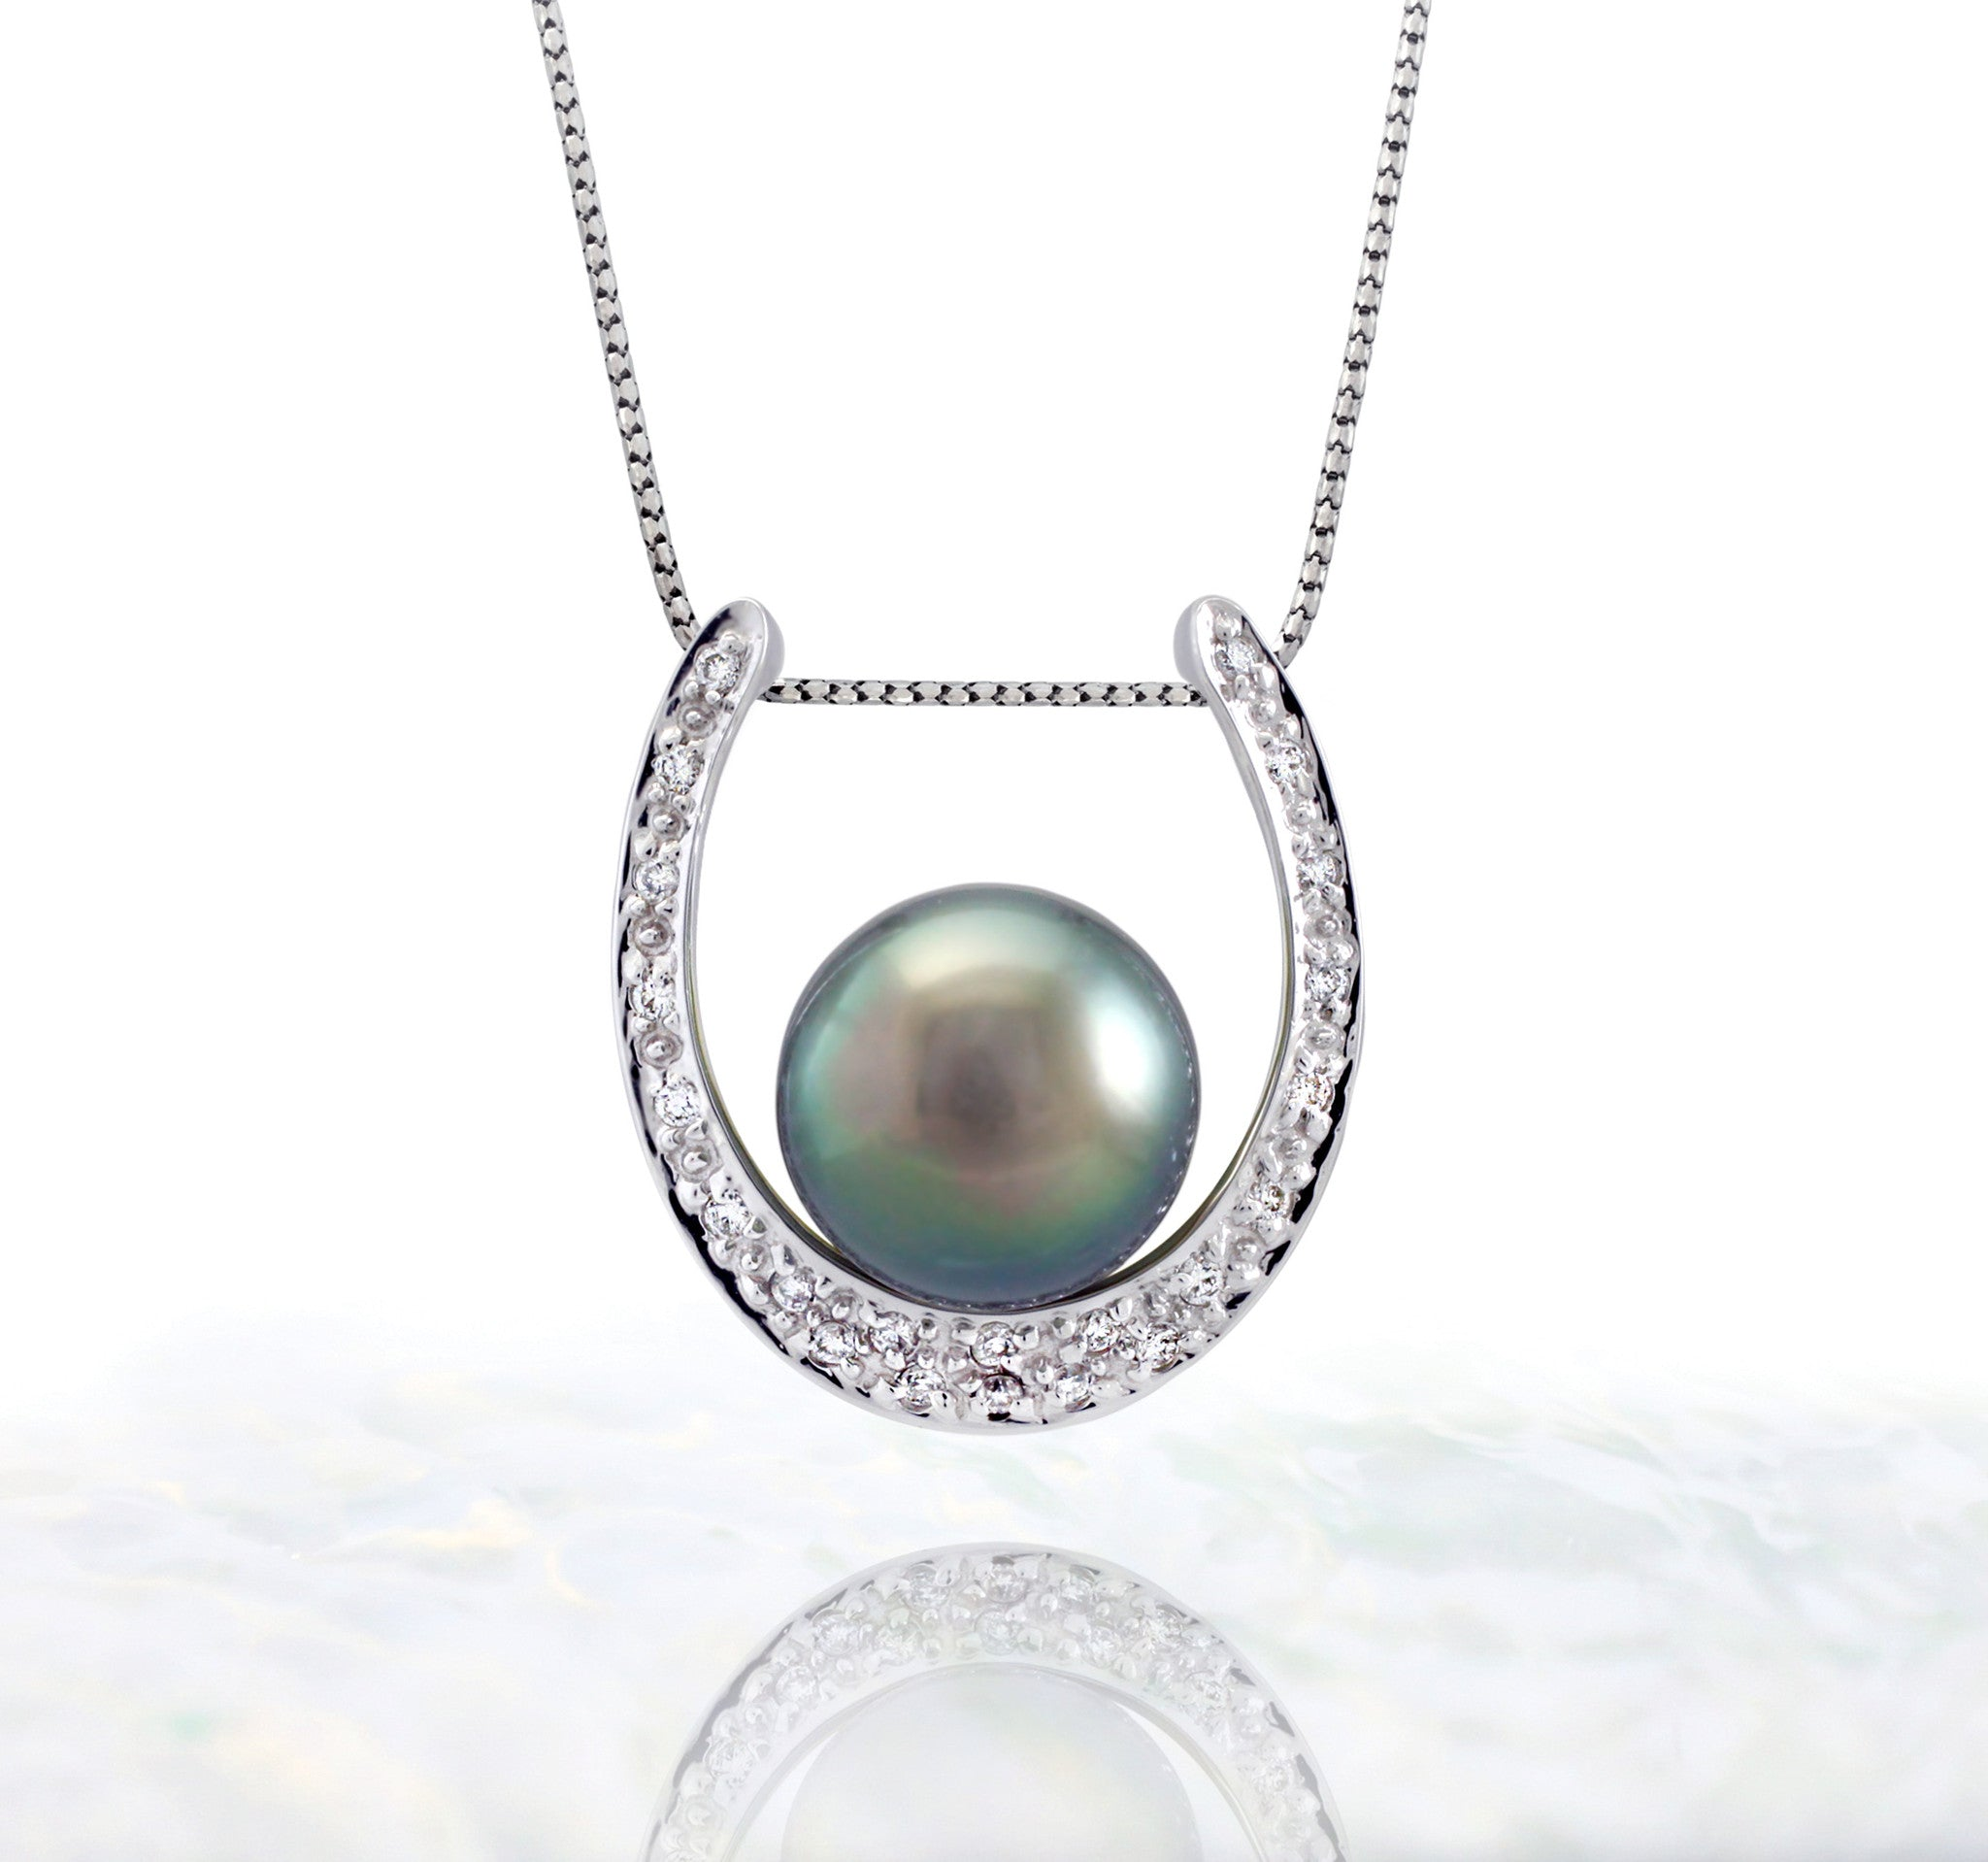 12cb6b78d Tahitian pearl pendant in 18k white gold and diamonds - Timeless Elegance -  PEWDPE00549